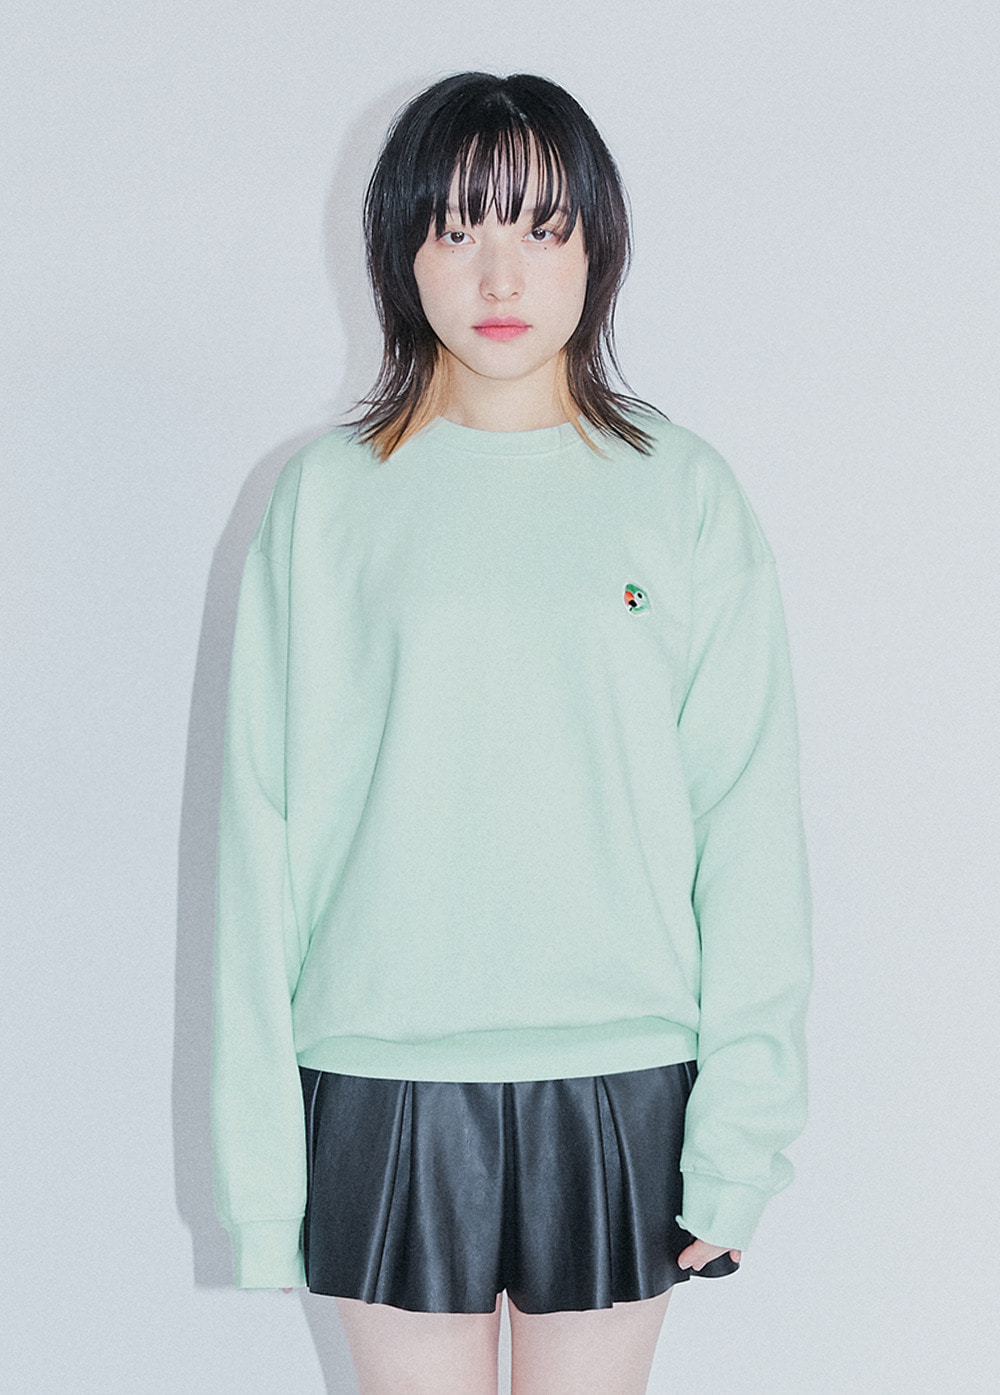 KANCO LOGO SWEATSHIRT mint